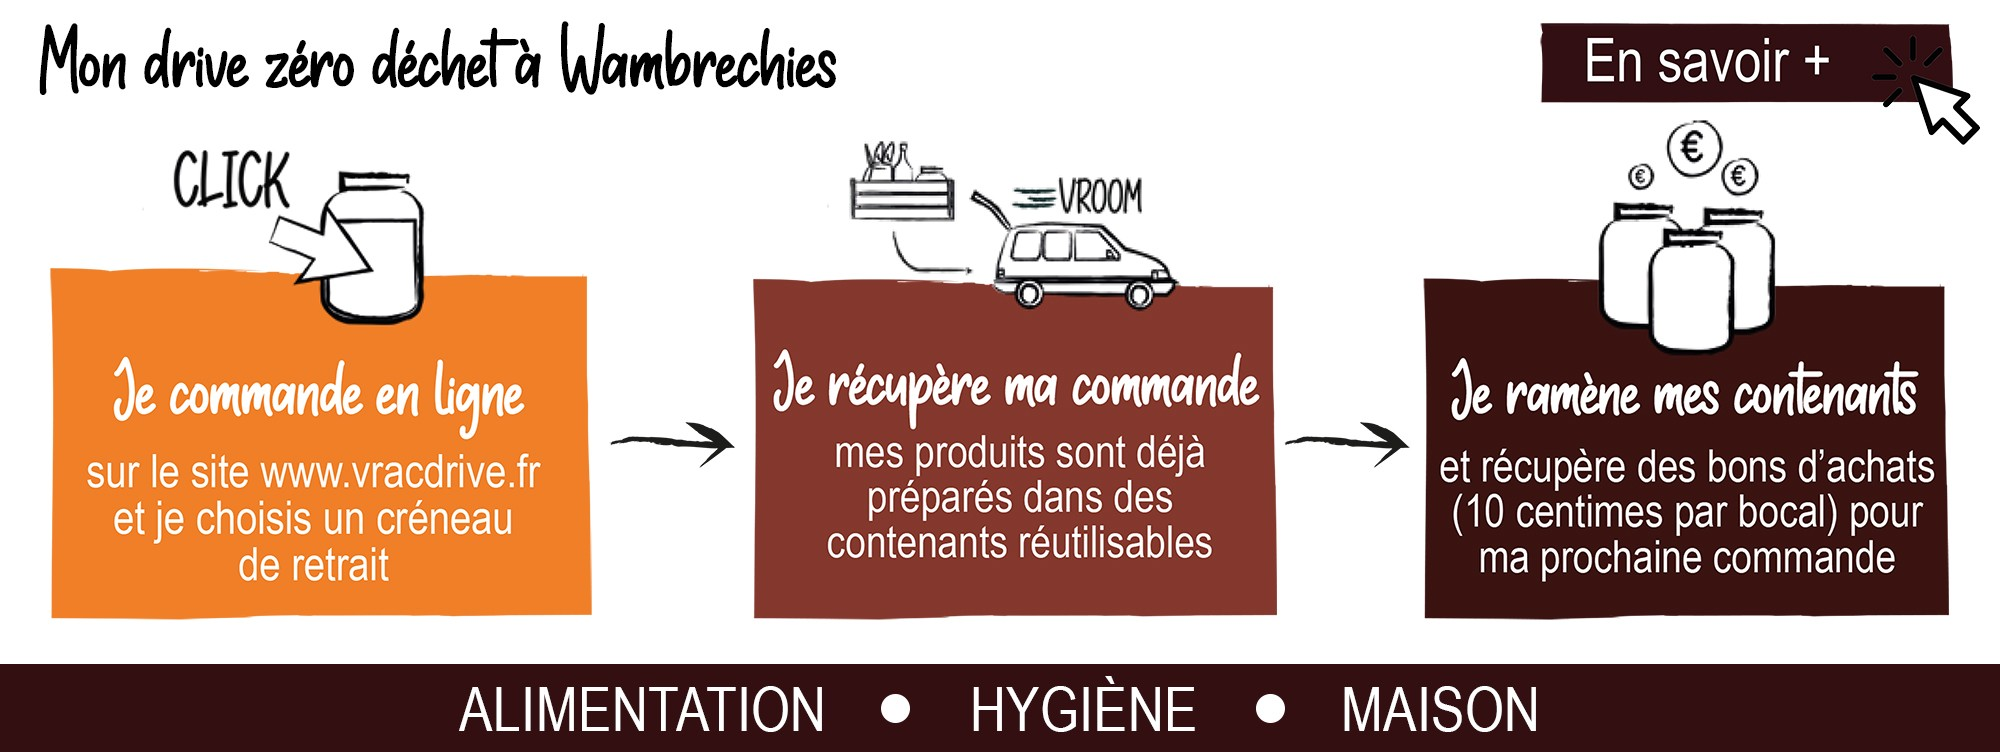 eco-responsables-gourmandes